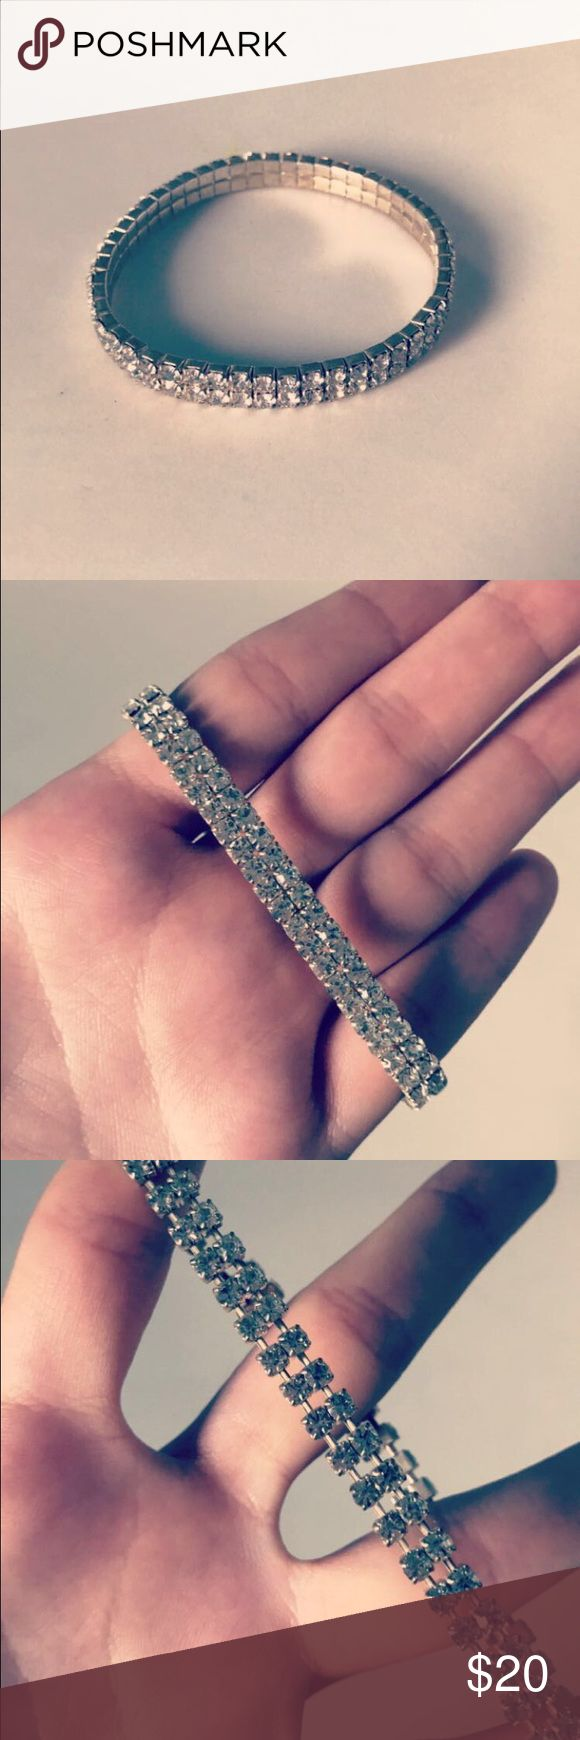 Dainty statement bracelet This is a great accessory if you want to add a bit of sparkle to your outfit. Slip it on to finish off your look flawlessly 💁 Jewelry Bracelets